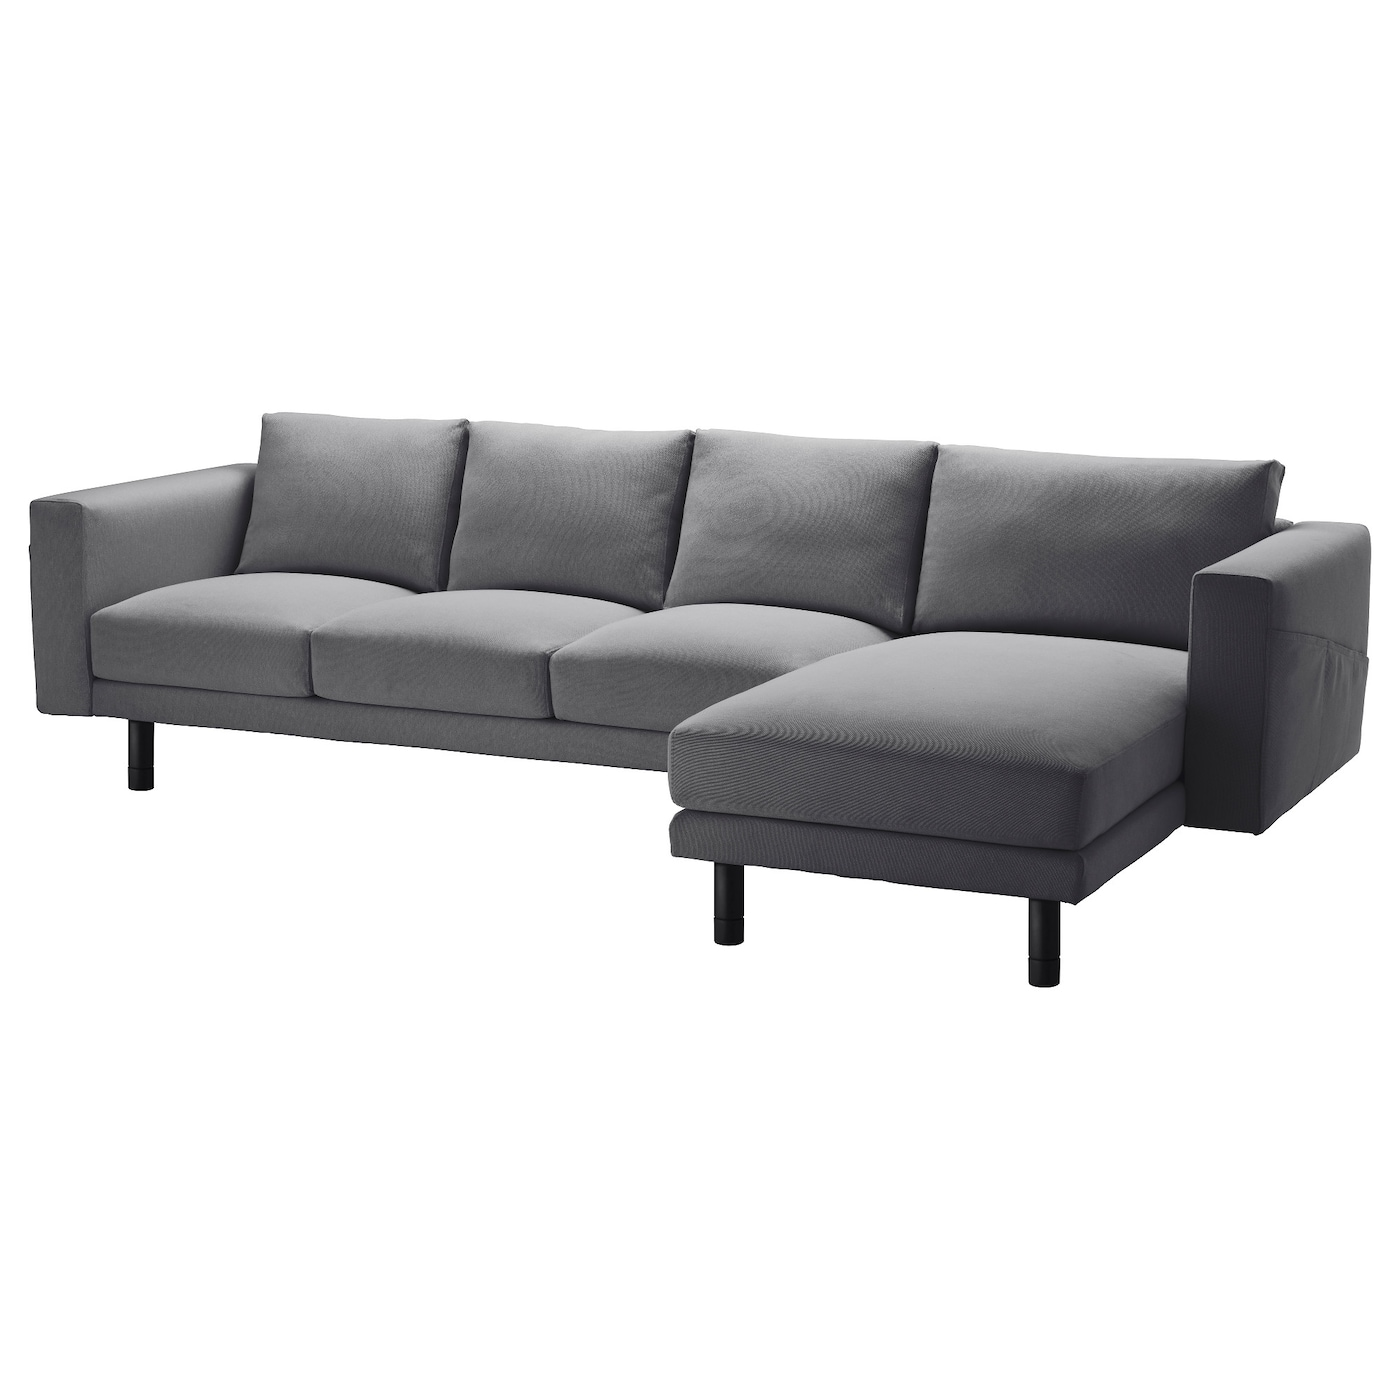 norsborg three seat sofa and chaise longue finnsta dark. Black Bedroom Furniture Sets. Home Design Ideas